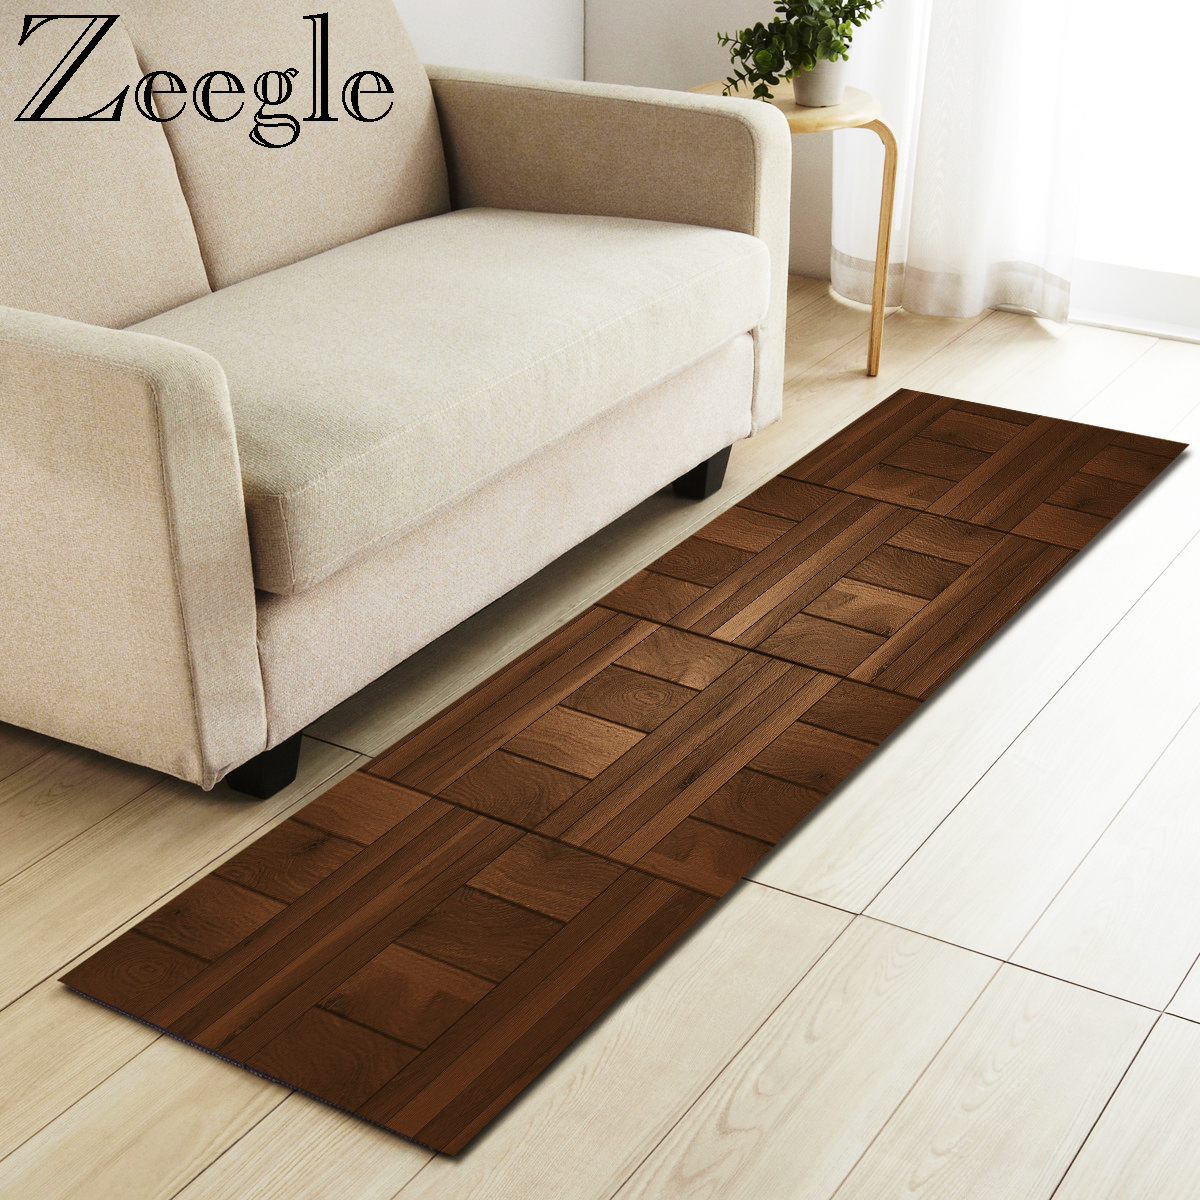 Zeegle Kitchen Floor Mat Praying Mats Non-slip Bedroom Rugs Bedside Mats Living Room Wood Painting Sofa Mat Long Kitchen Rug image